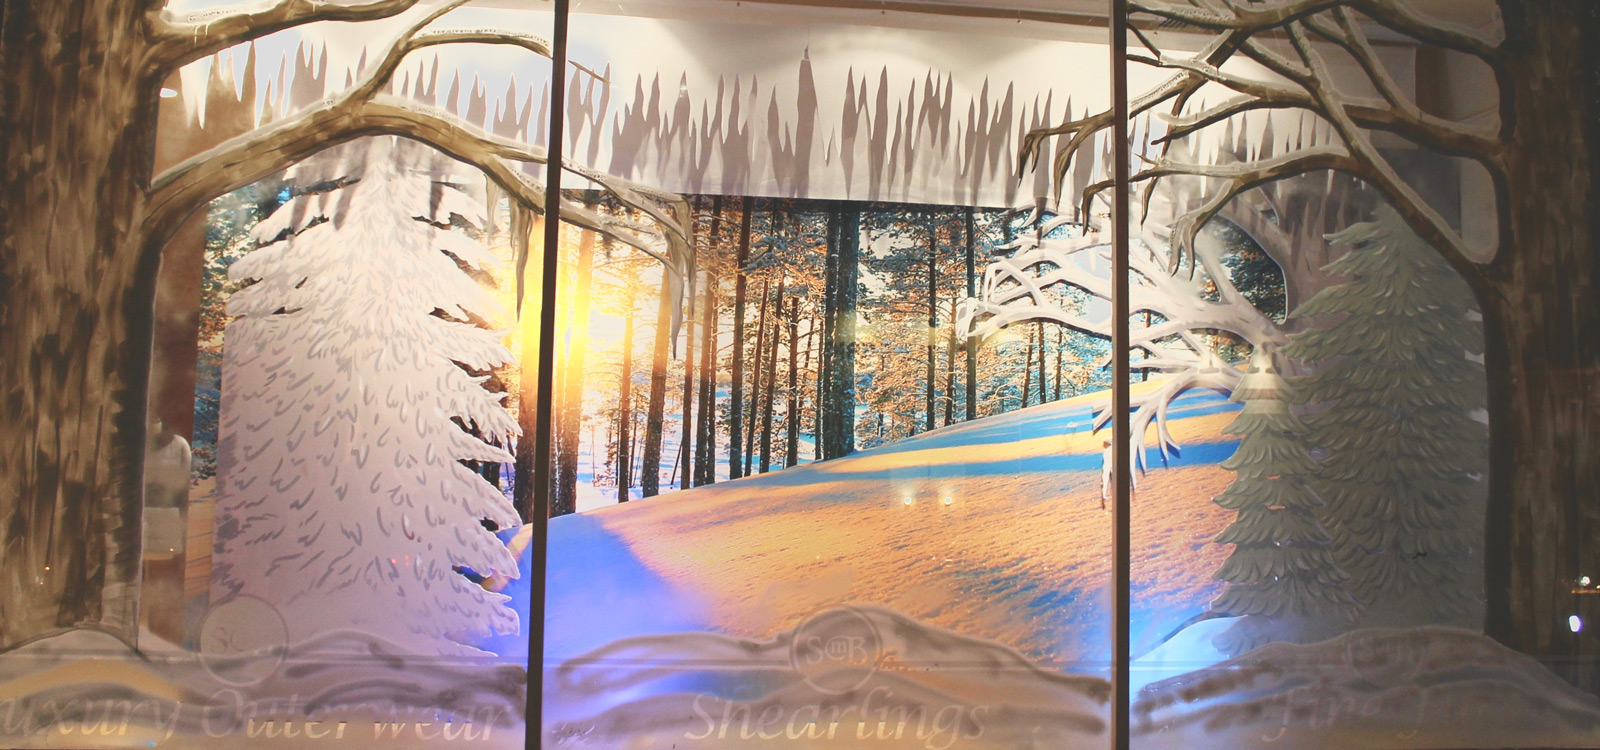 This winter window display is surprising us with a calm view of a Montego bay, all covered by snow.